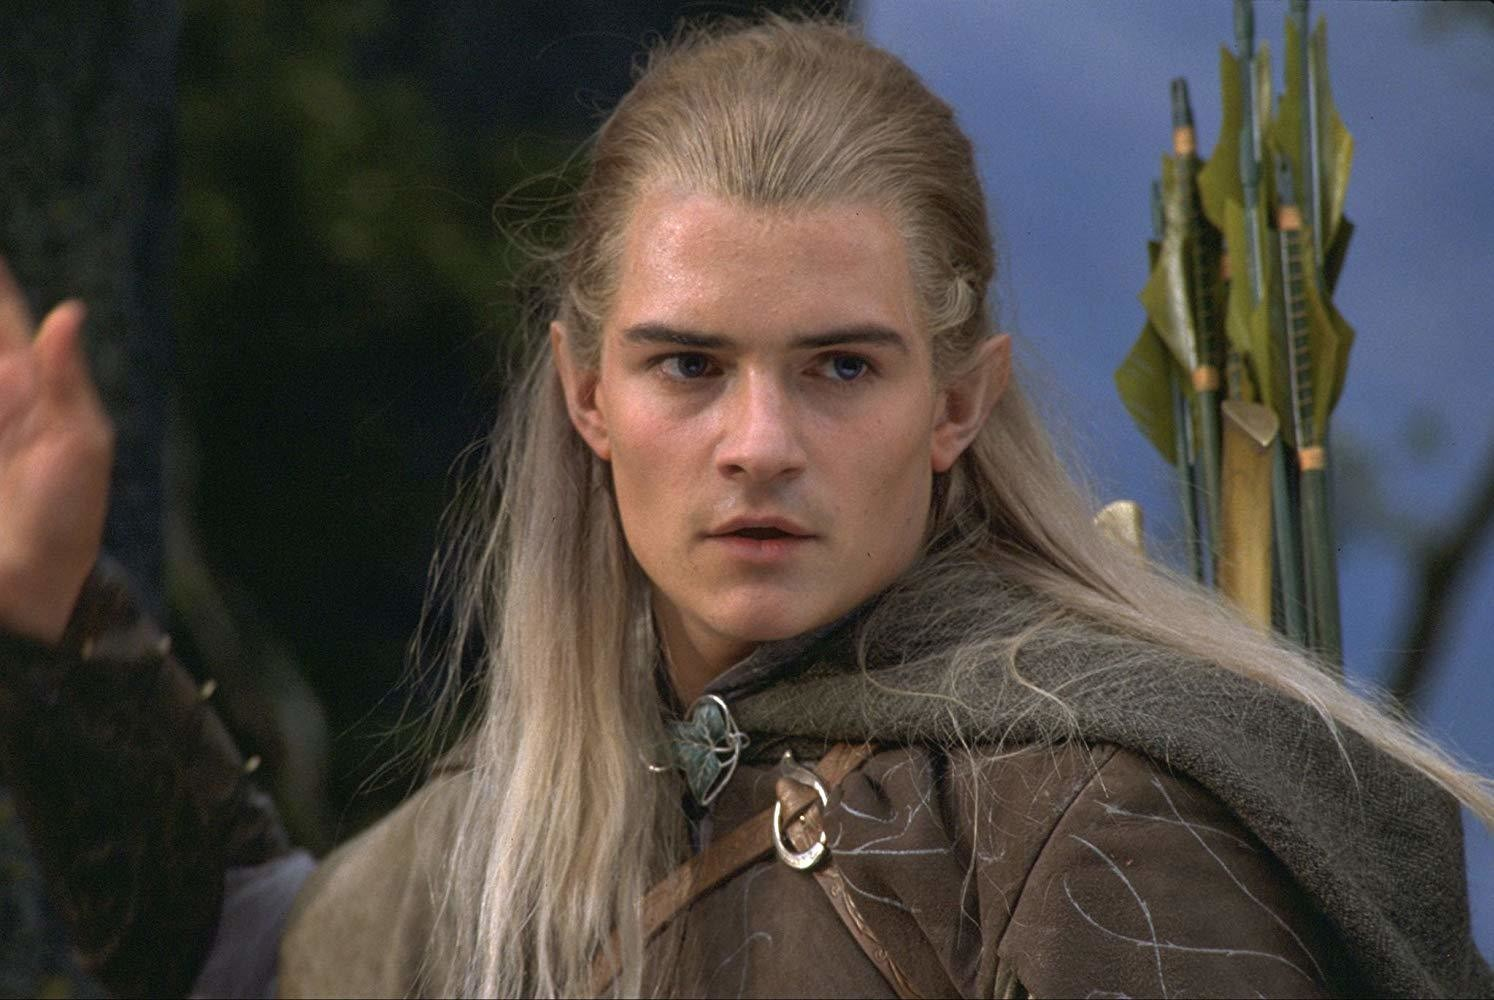 Everything We Know So Far About Amazon's 'Lord Of The Rings' Series